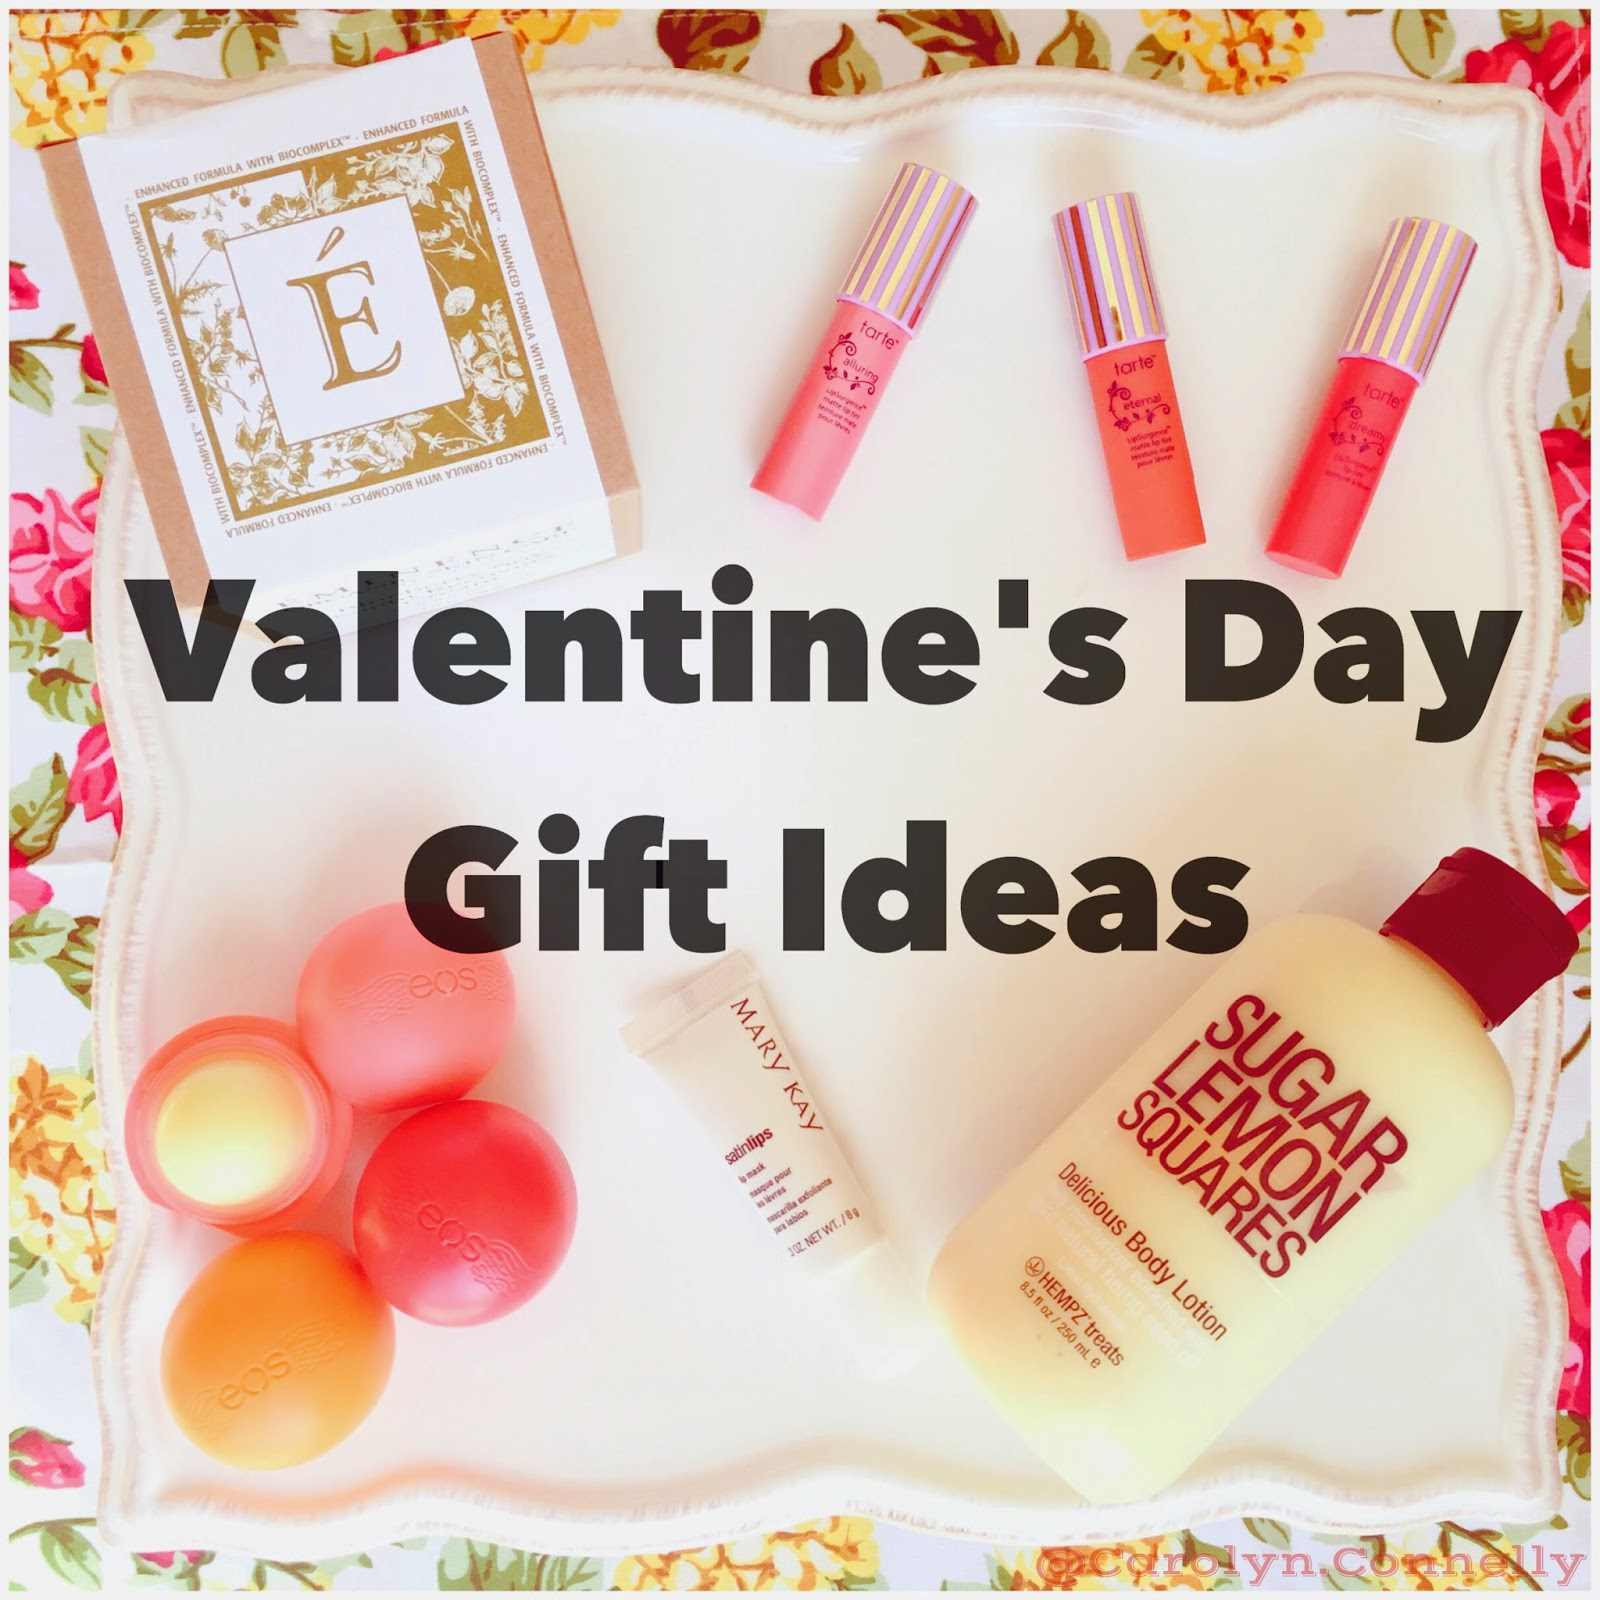 Valentine's Day Gift Ideas | Beauty with Care